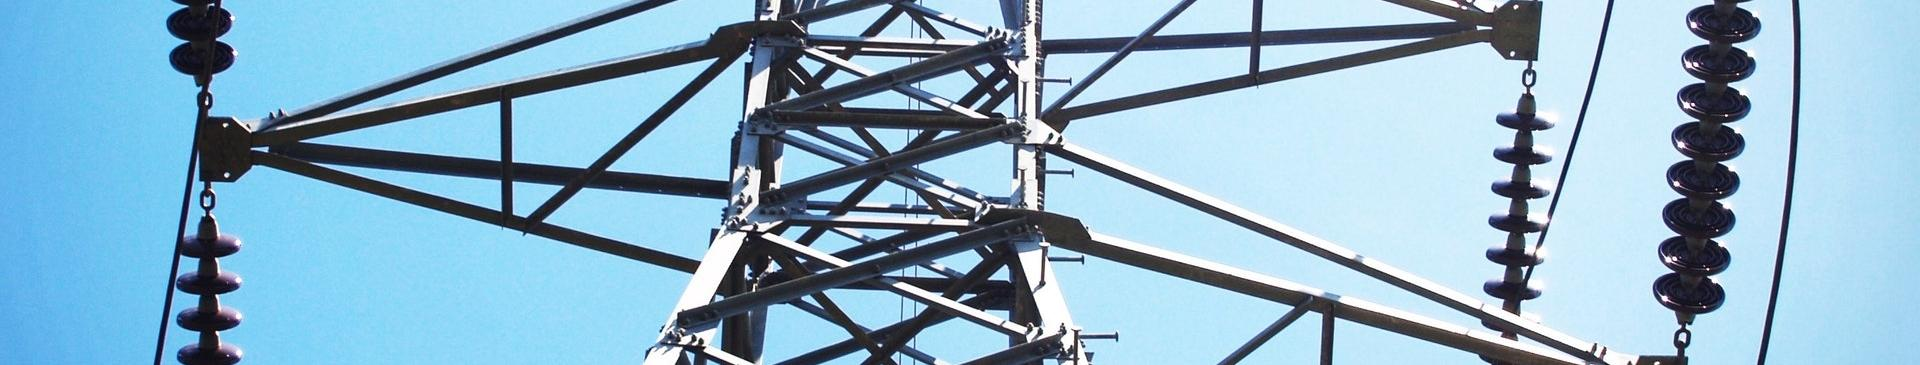 low-angle-view-of-electric-post-216578.jpg